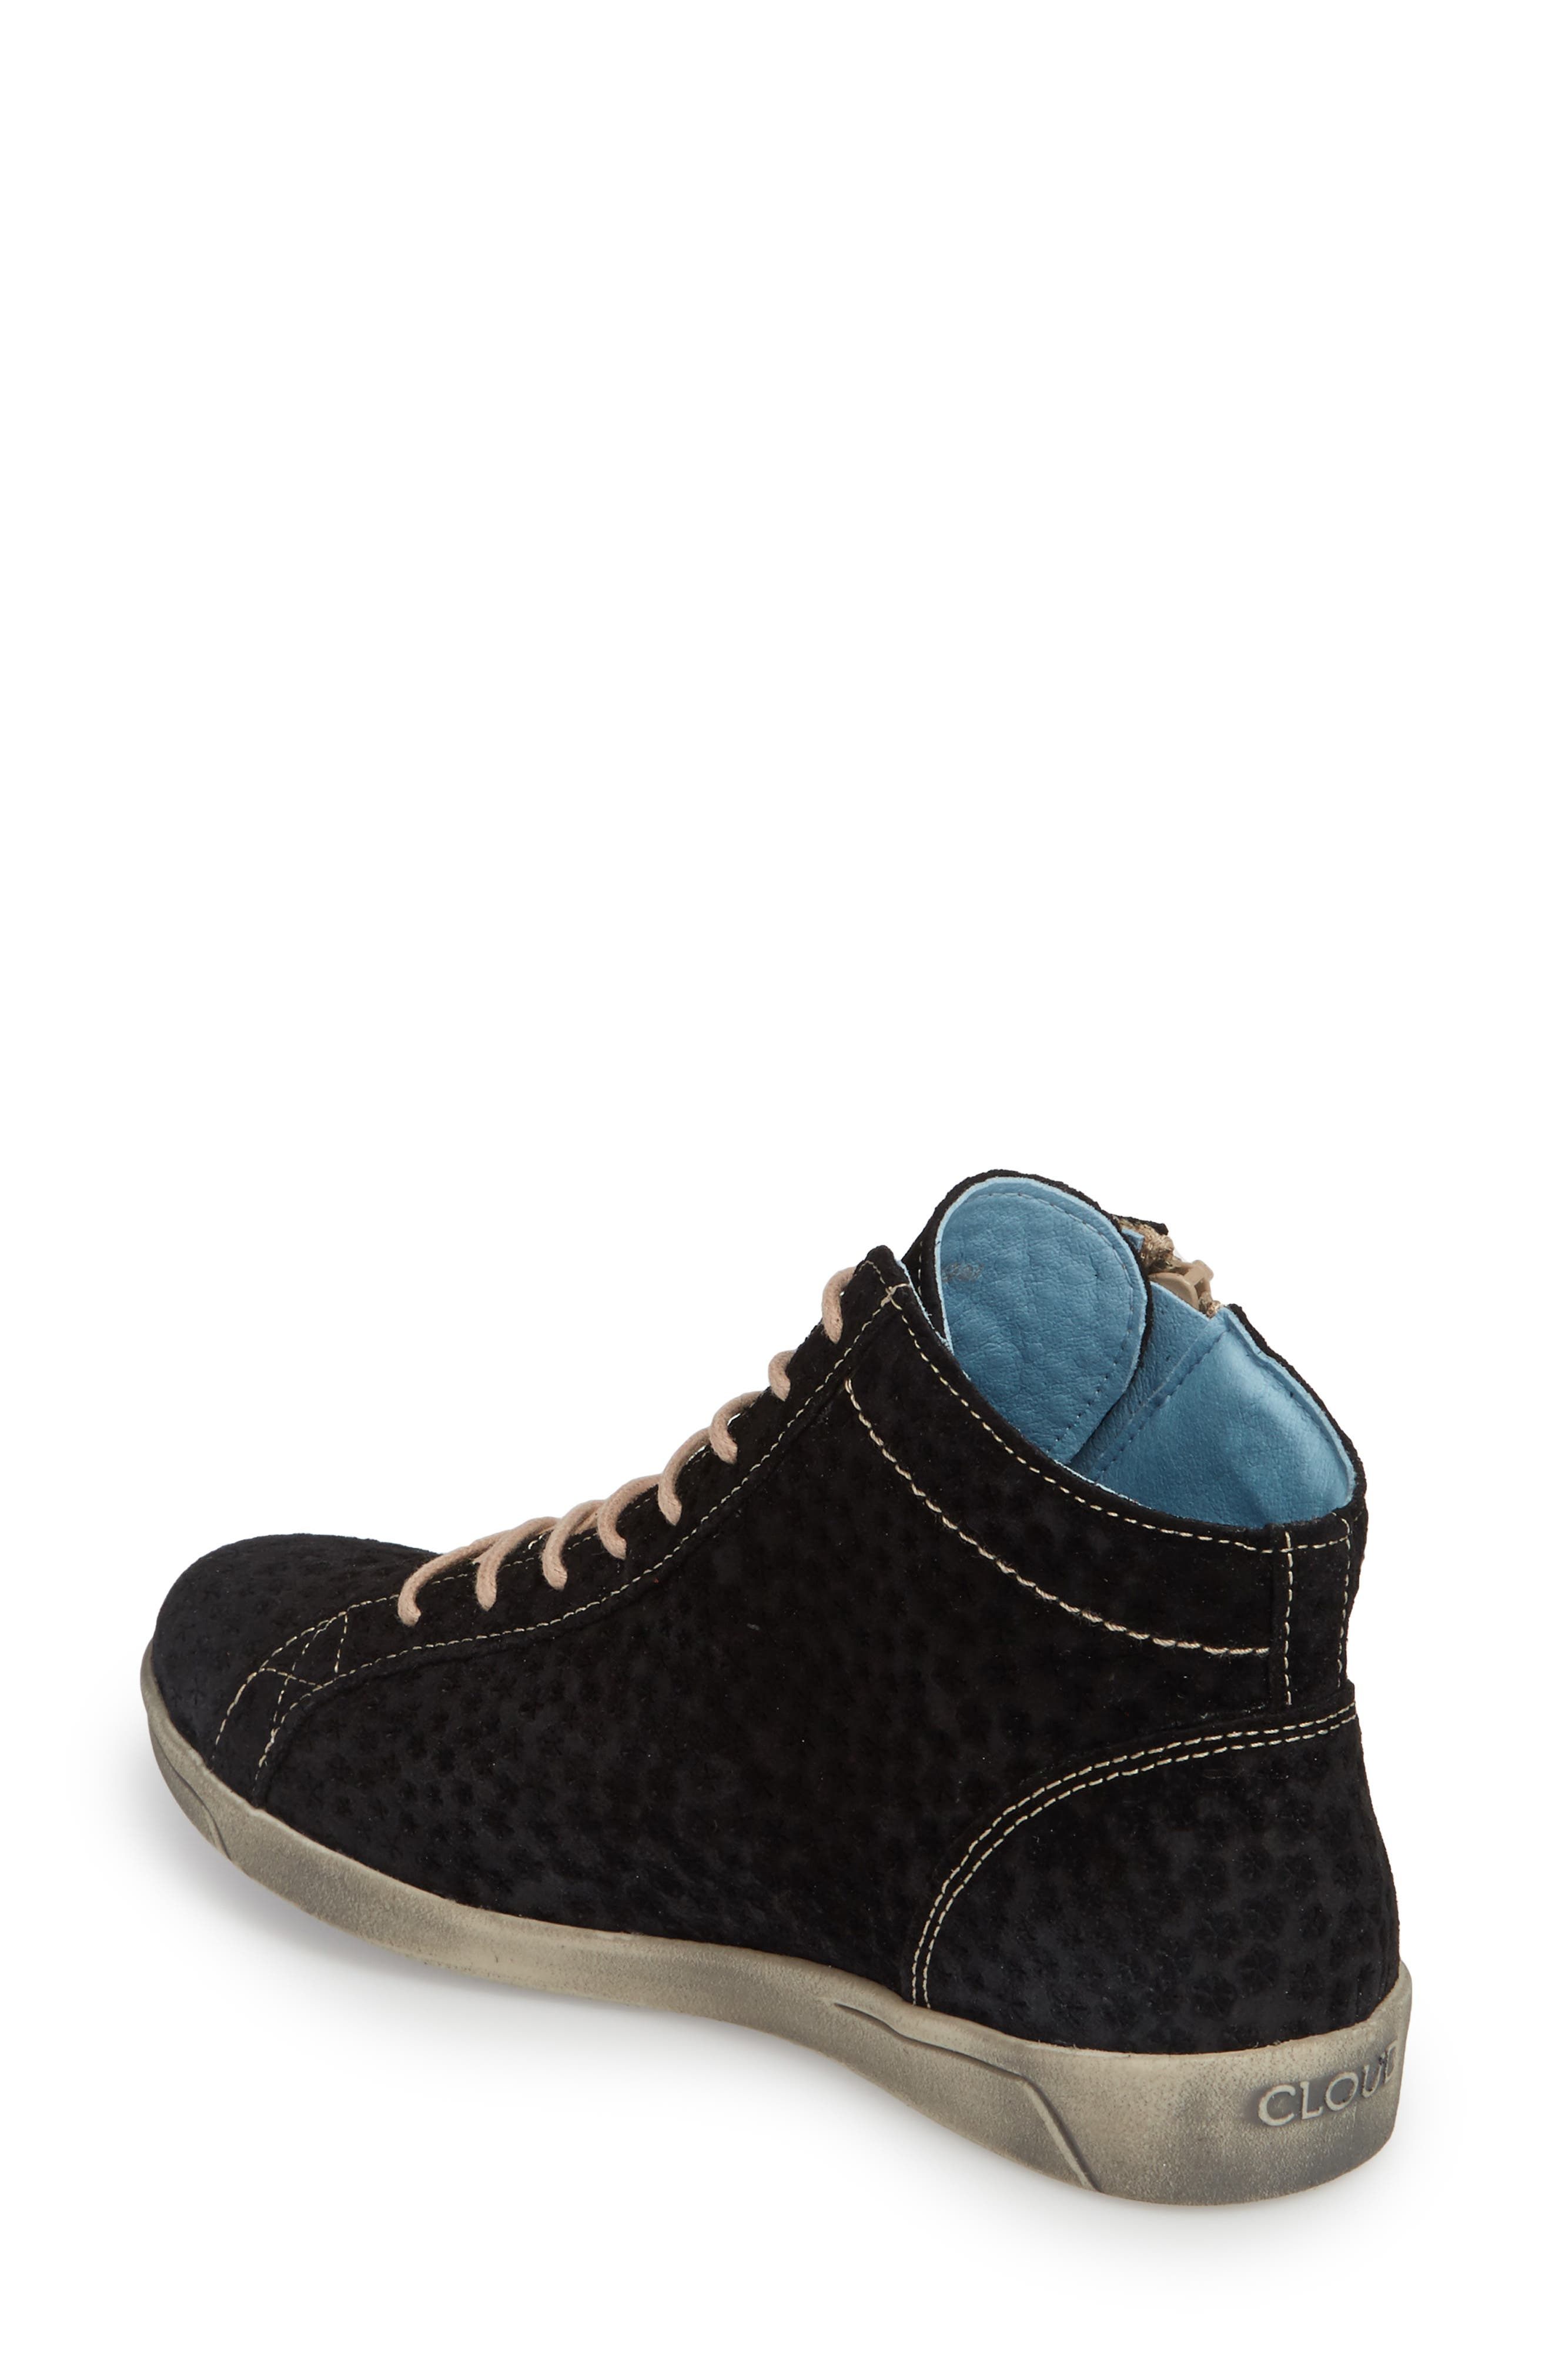 Aika Star Perforated High Top Sneaker,                             Alternate thumbnail 2, color,                             BLACK LEATHER